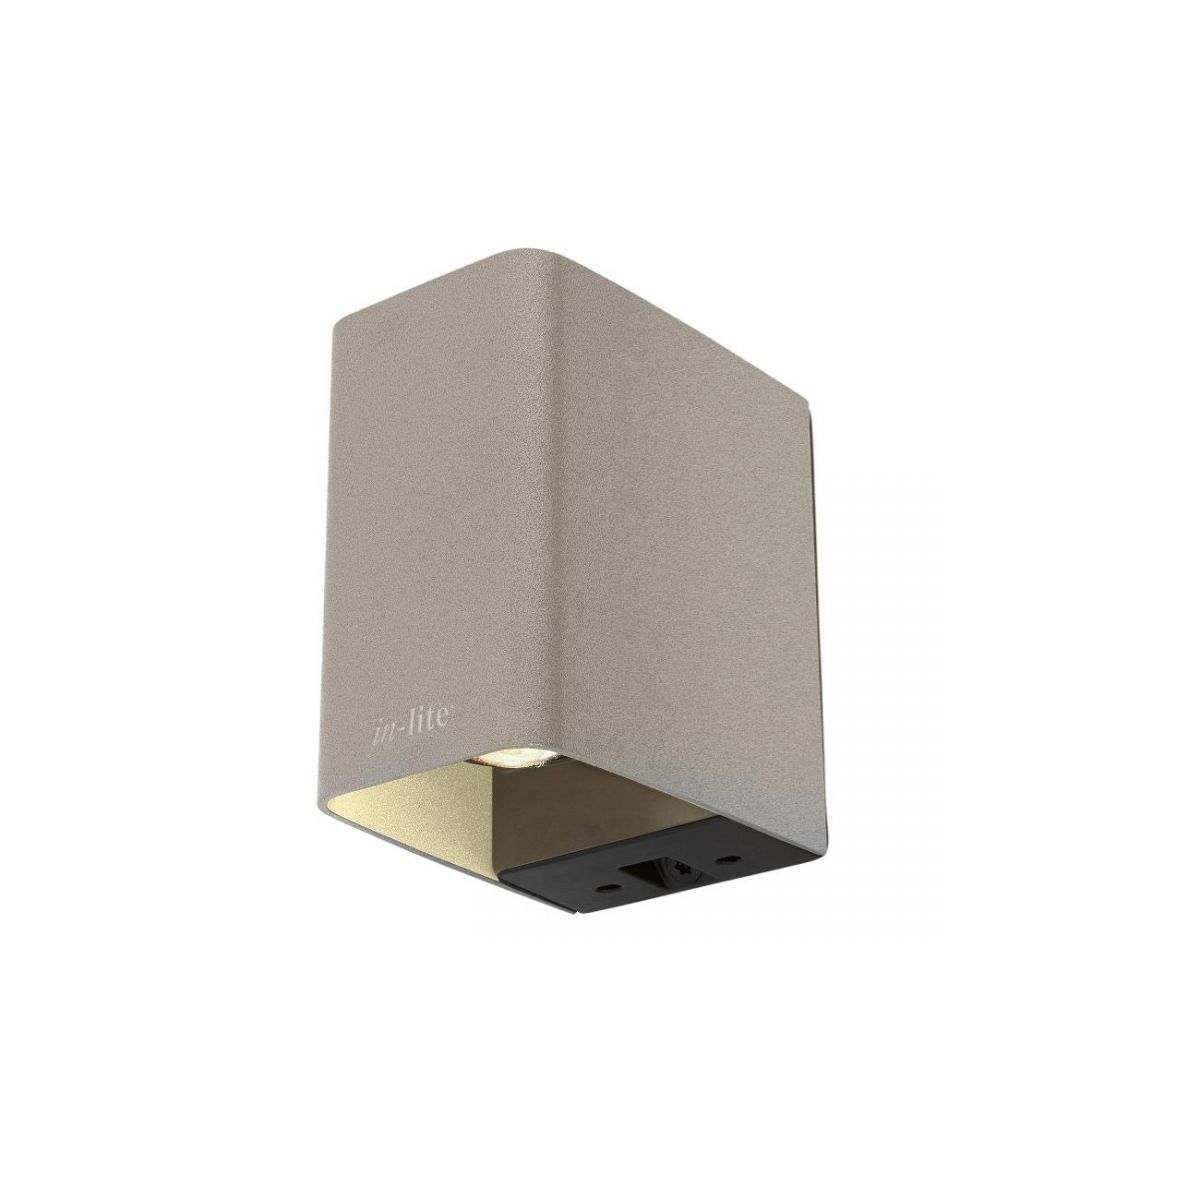 in-lite Ace Wall Down Light.1